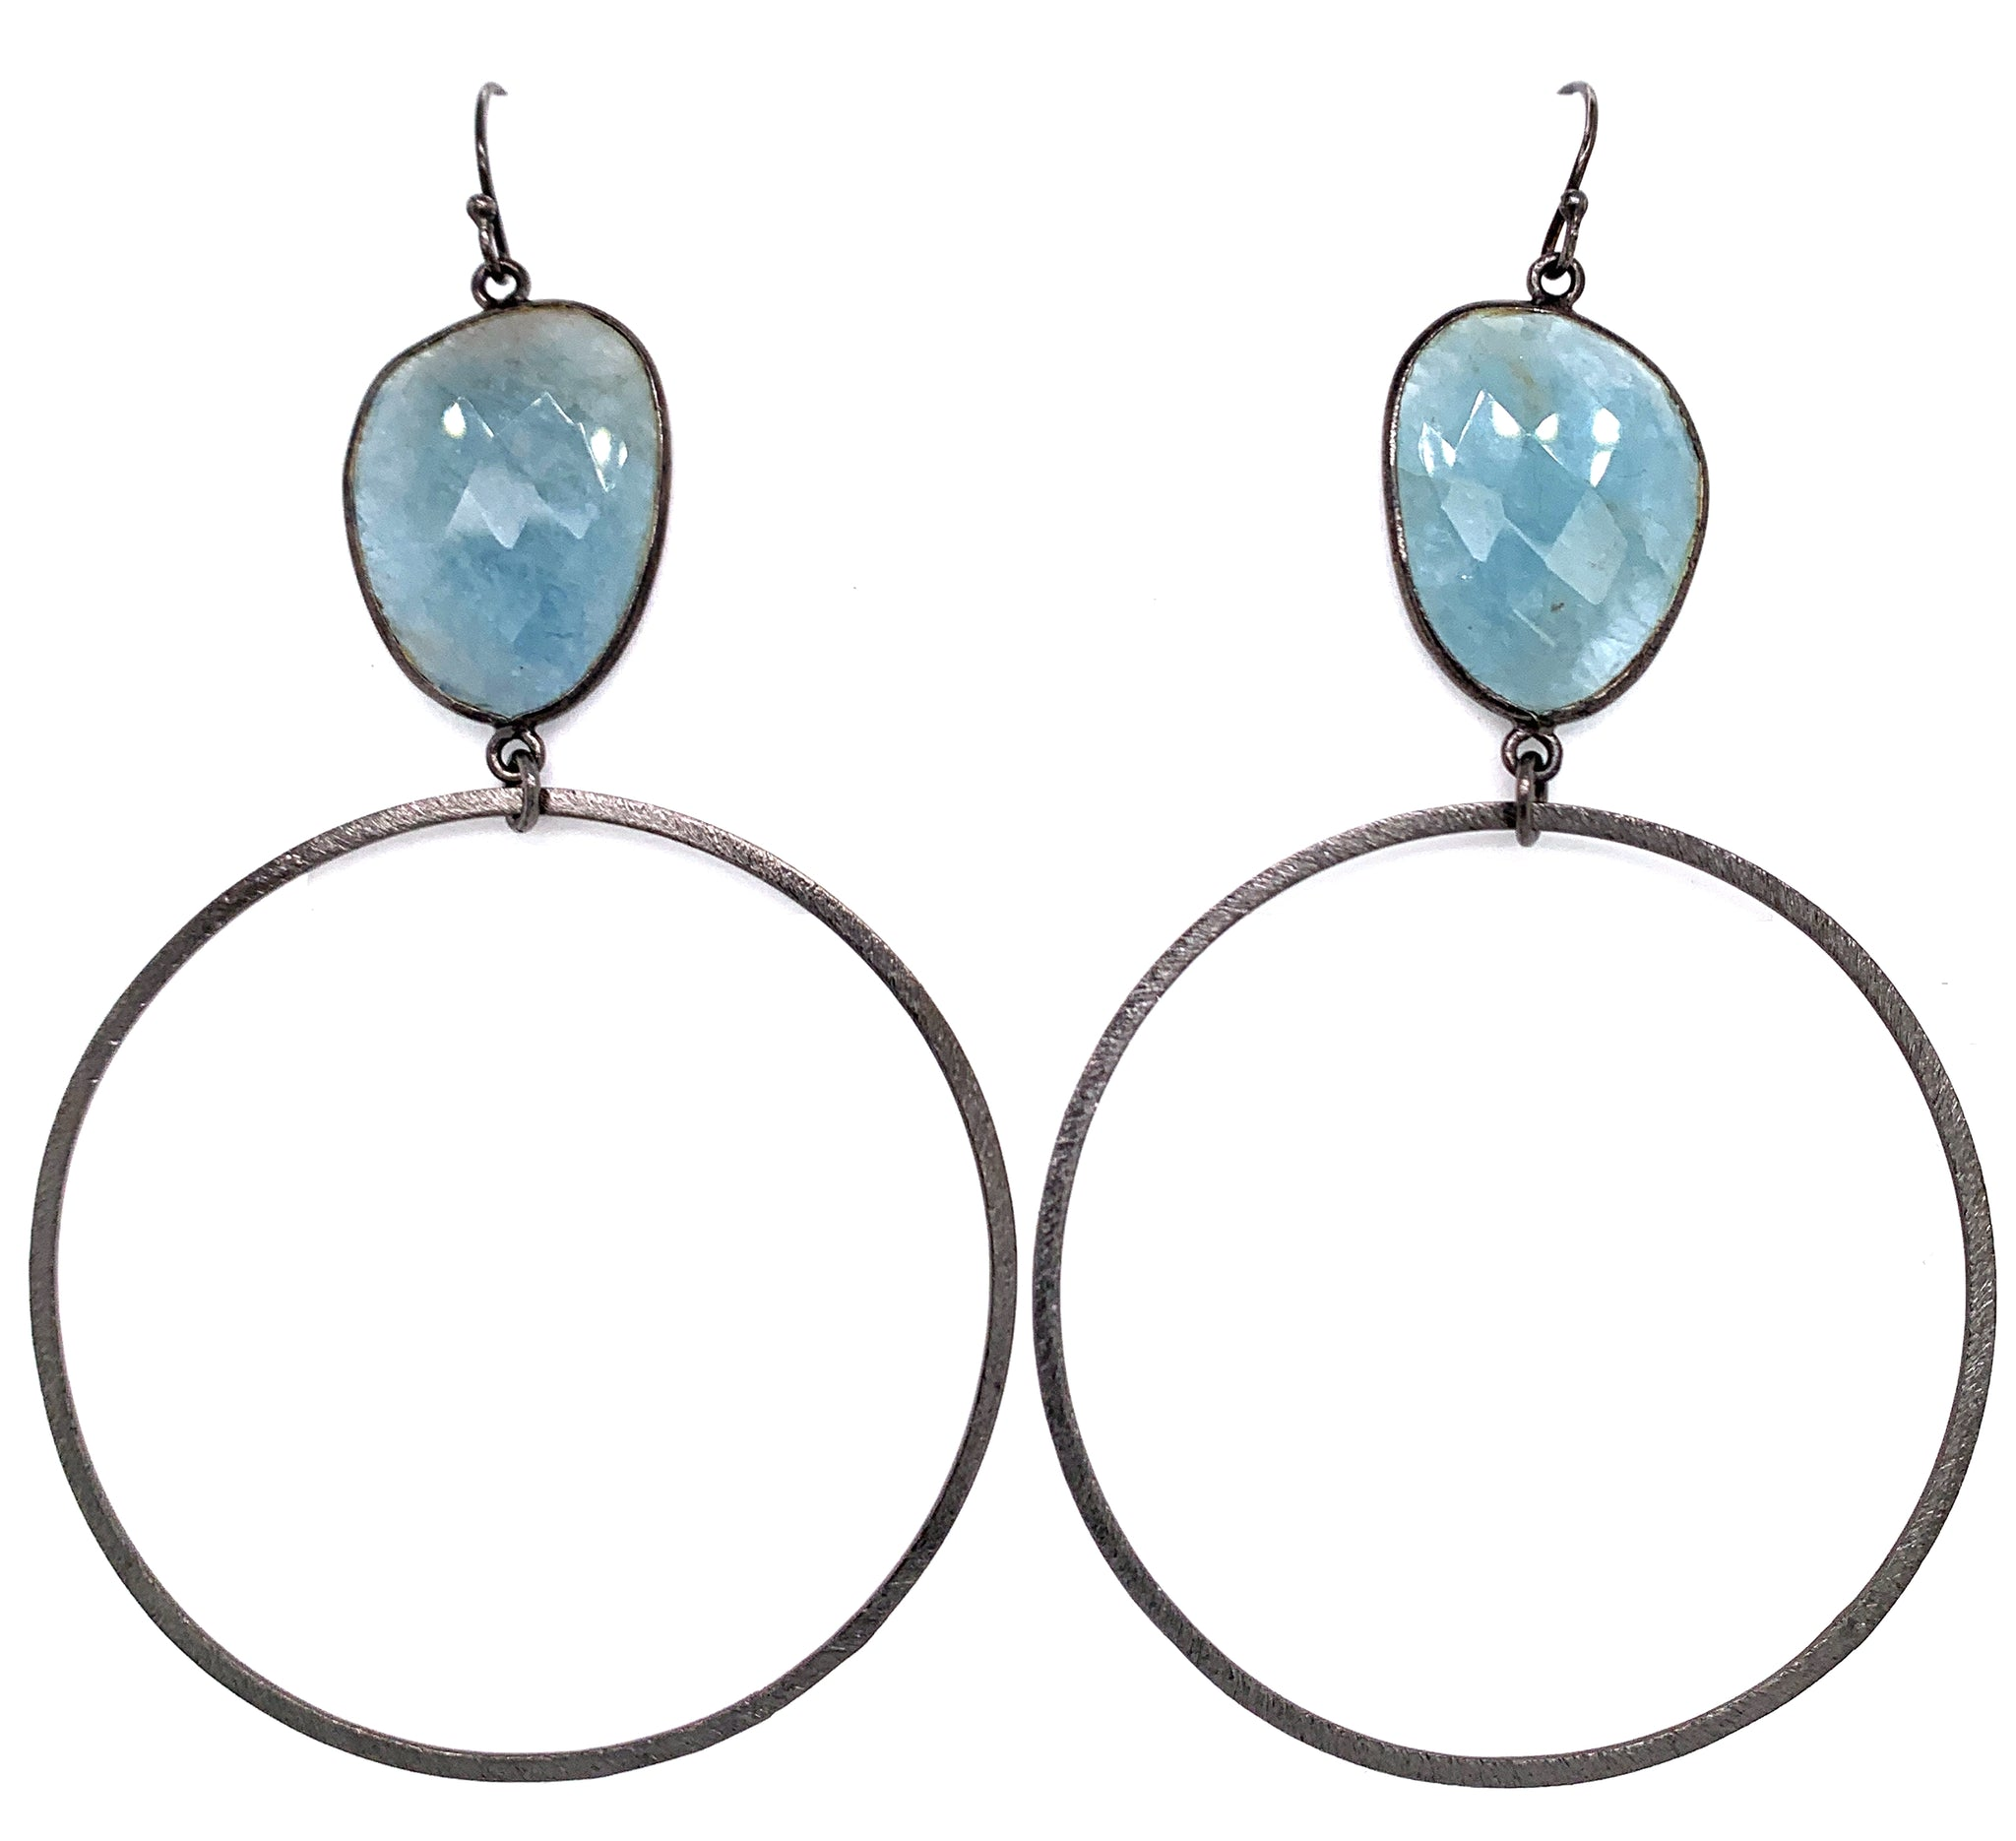 Semi-Precious Gemstone Top - AAA highly coveted Larimar only found in Dominican Republic Bottom Hoop: Gold Vermeil, Sterling Silver or Oxidized Sterling Length Approx 3.5-3.75 Inch Drop (40mm Bottom) blue quartz google facebook